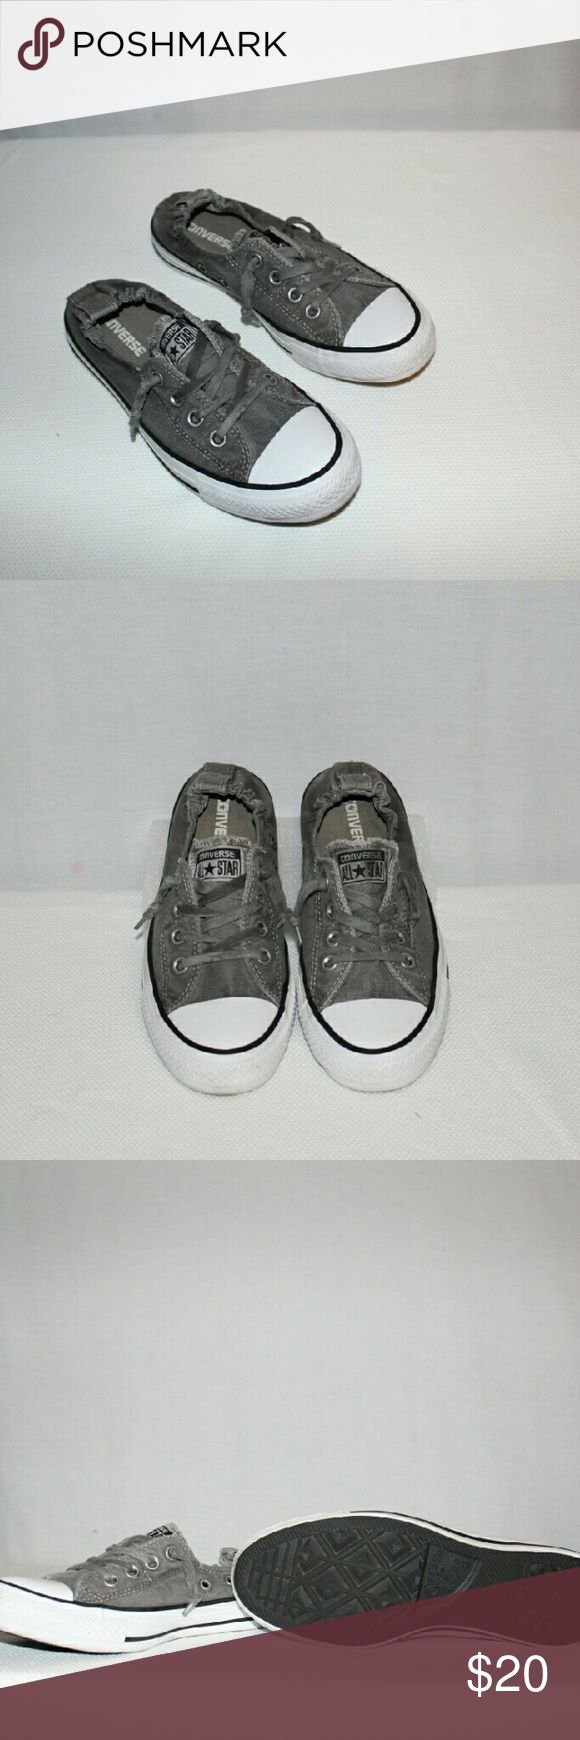 Converse Slip On Sneakers. Converse Slip On Sneakers, great condition, free of staining and rips, elastic back for easy Slip on, soles show little to no wearing. Converse  Shoes Sneakers